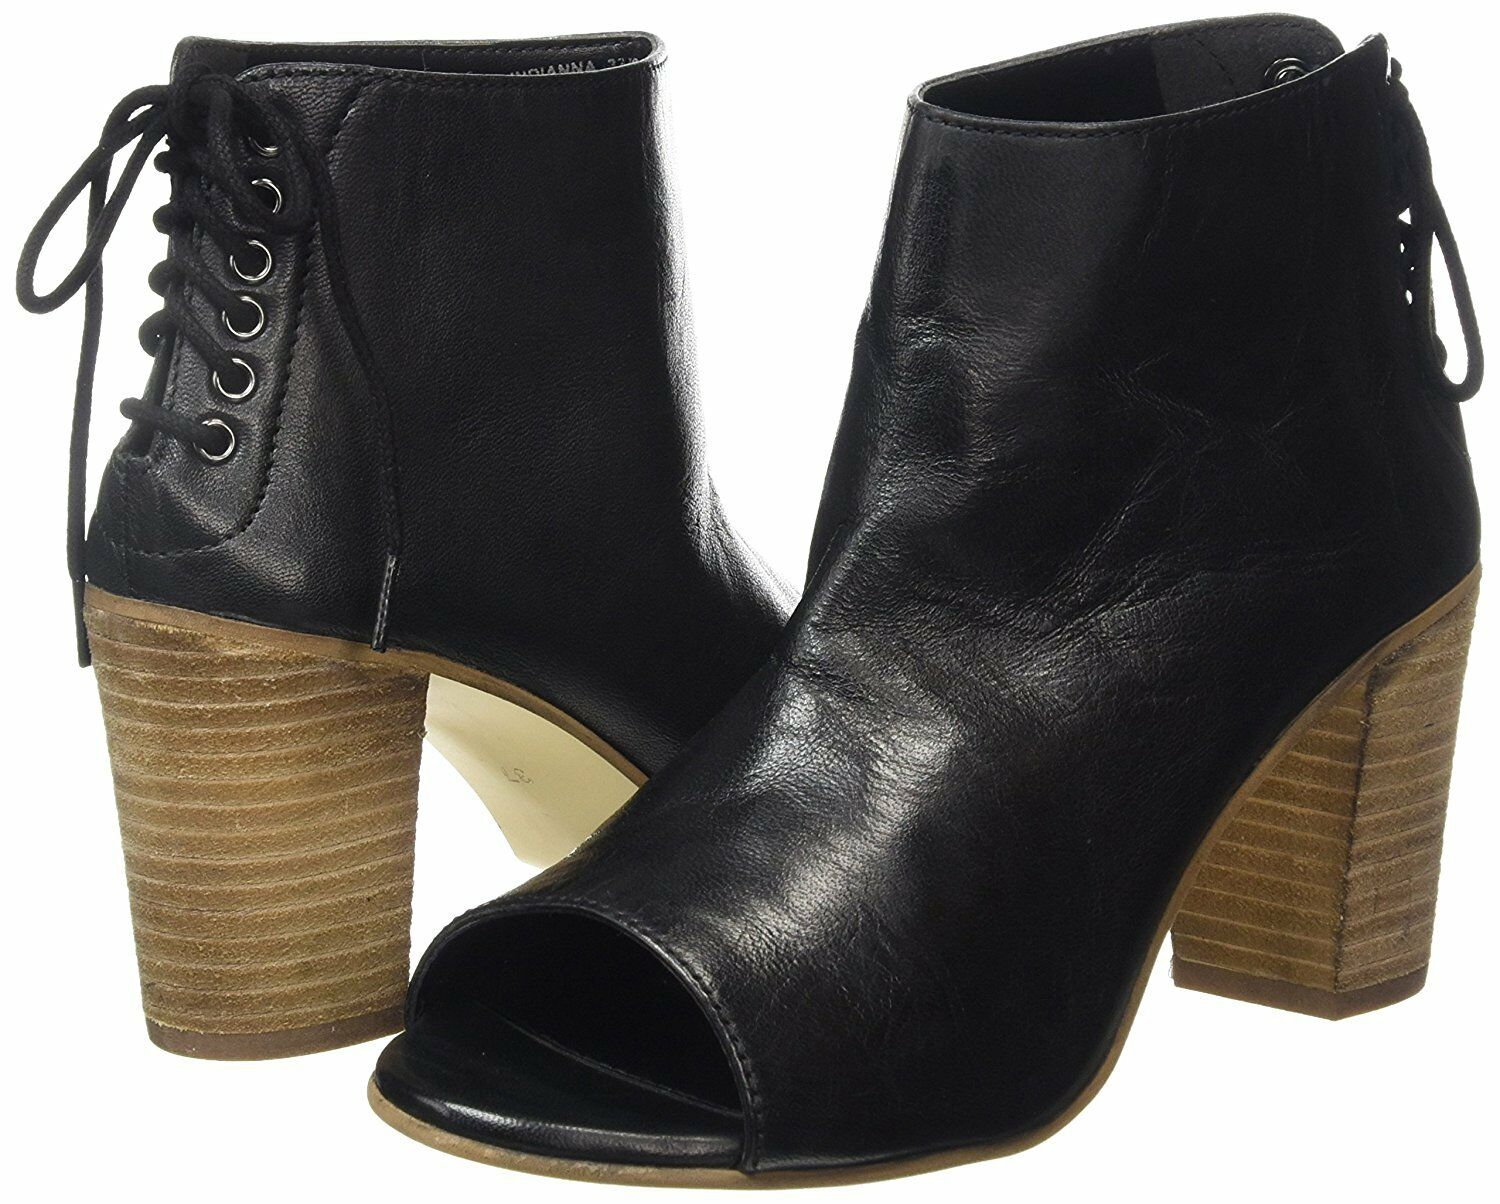 DUNE INDIANNA SIZE 3 36 BLACK REAL LEATHER MID HEEL ANKLE SHOE BOOTS  BNWB